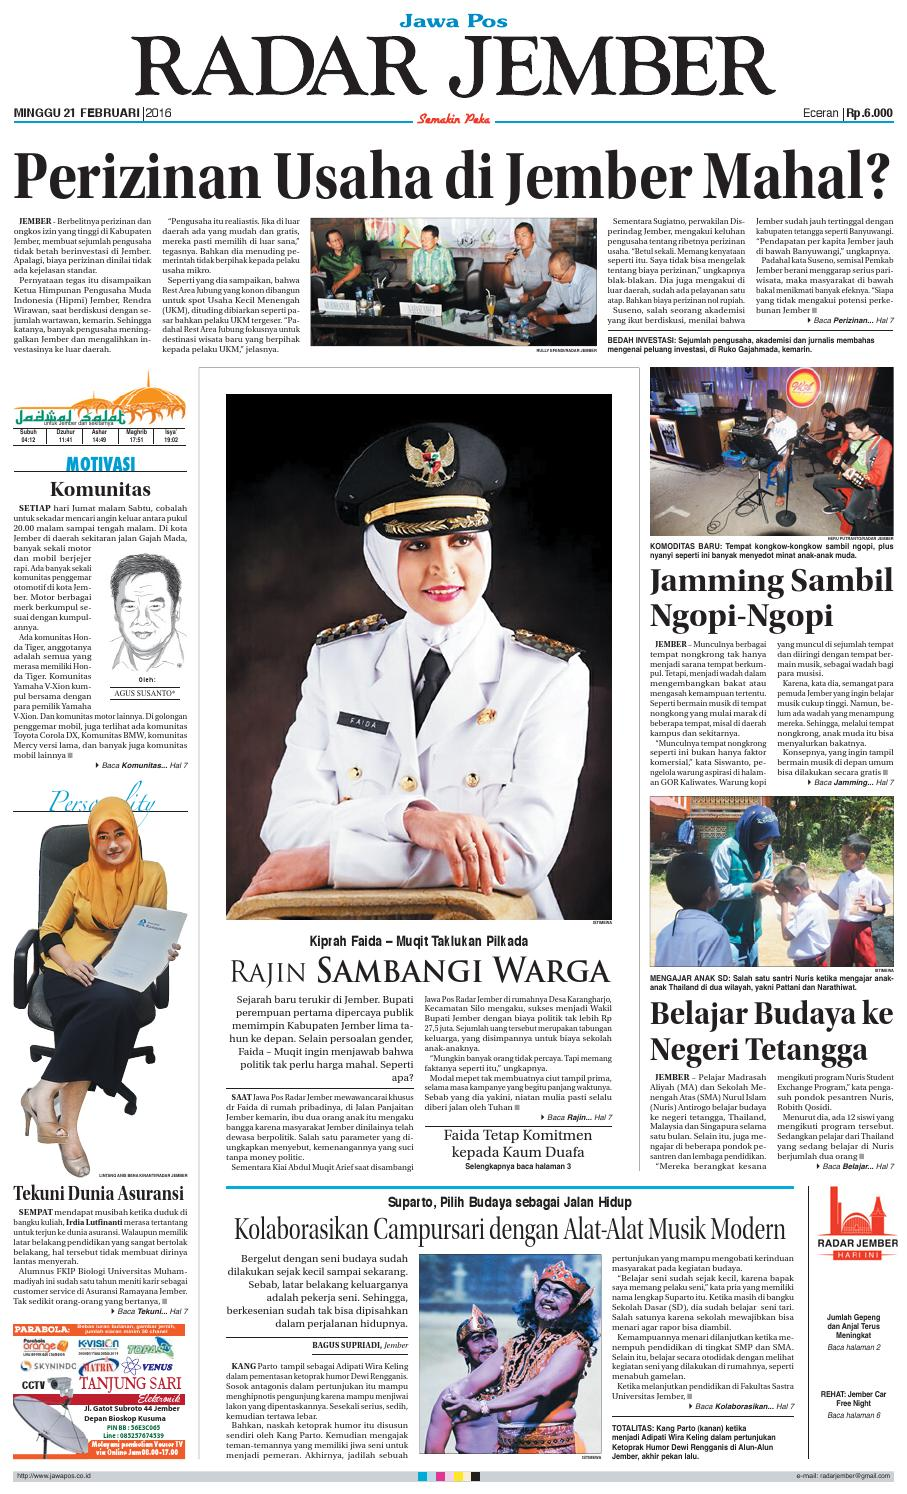 jember 210216 rj by radar jember online issuu